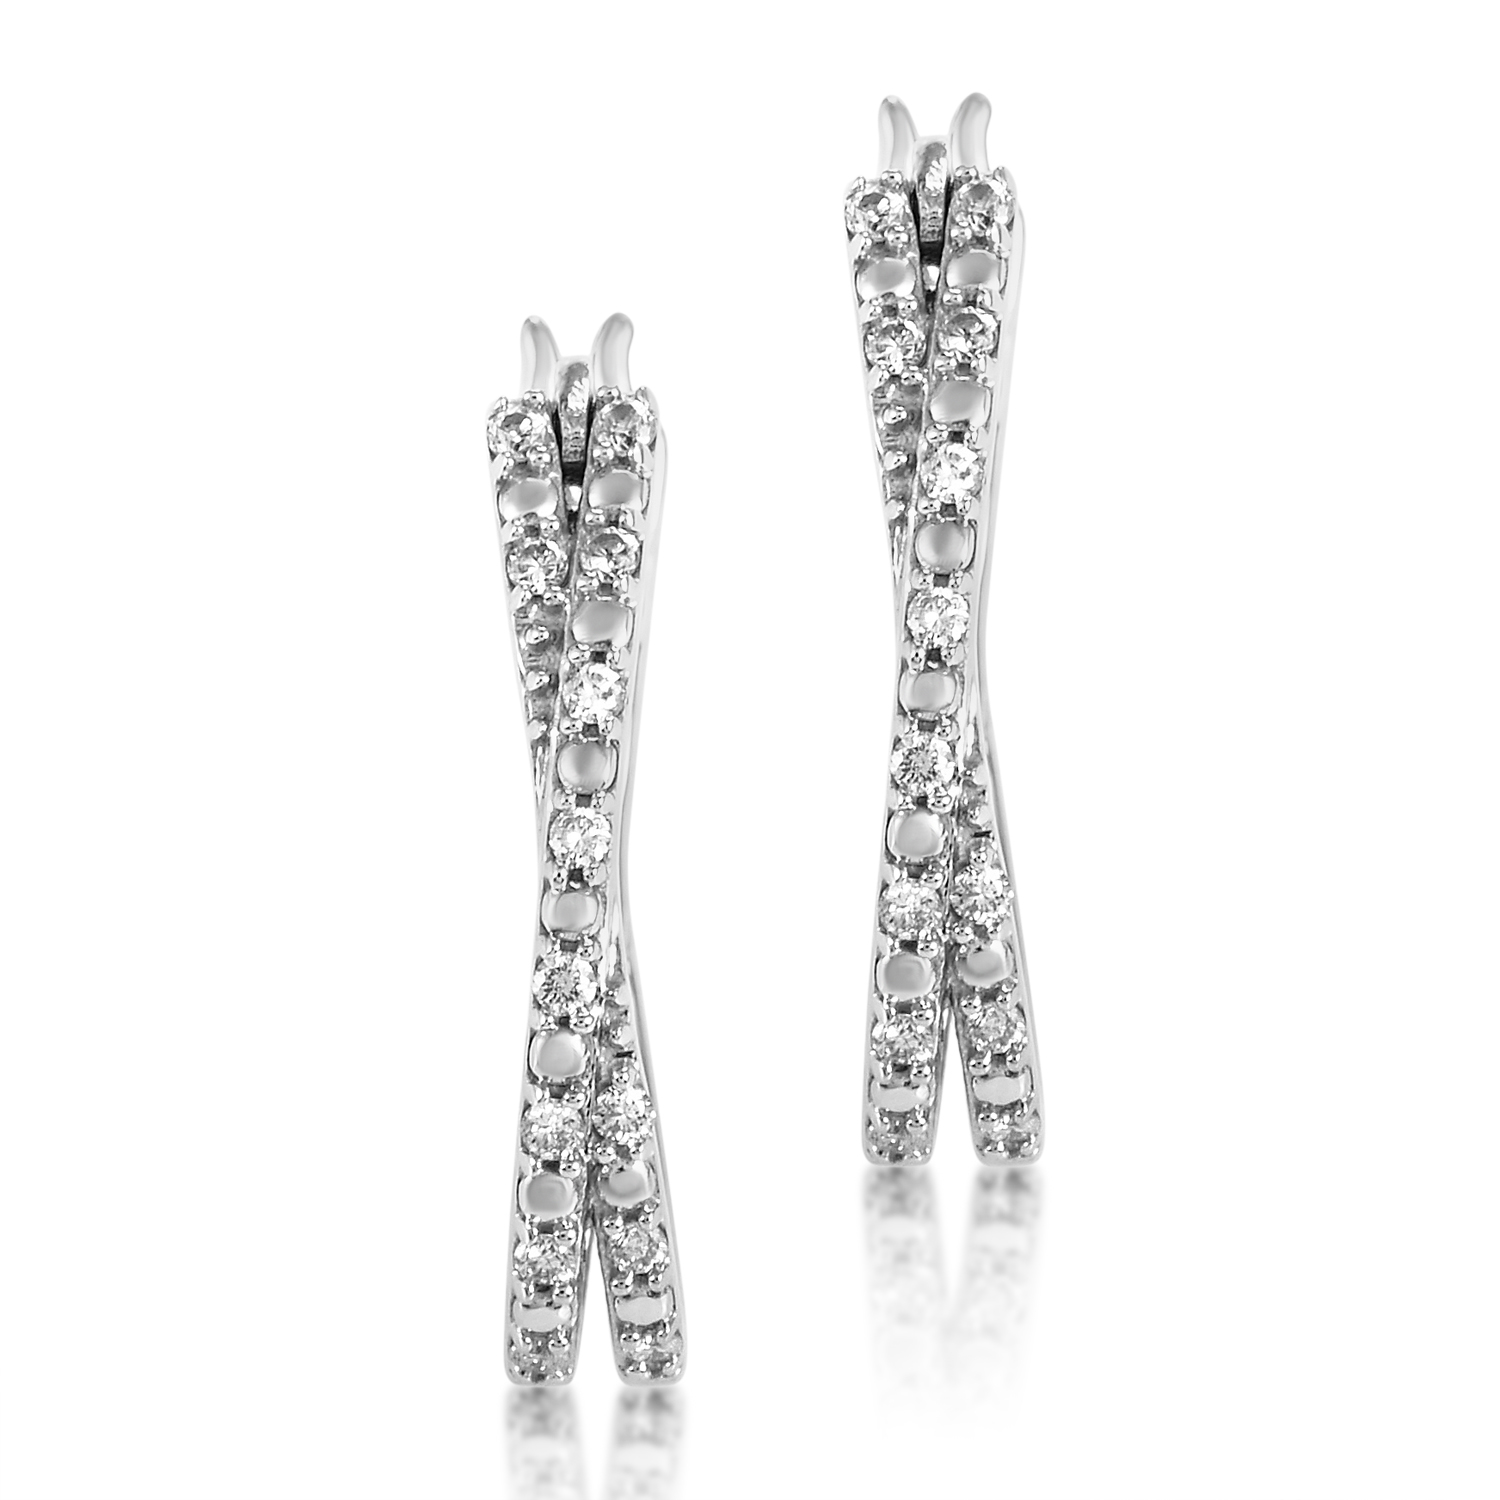 Women's 14K White Gold Crisscross Diamond Hoop Earrings PSB07-072116